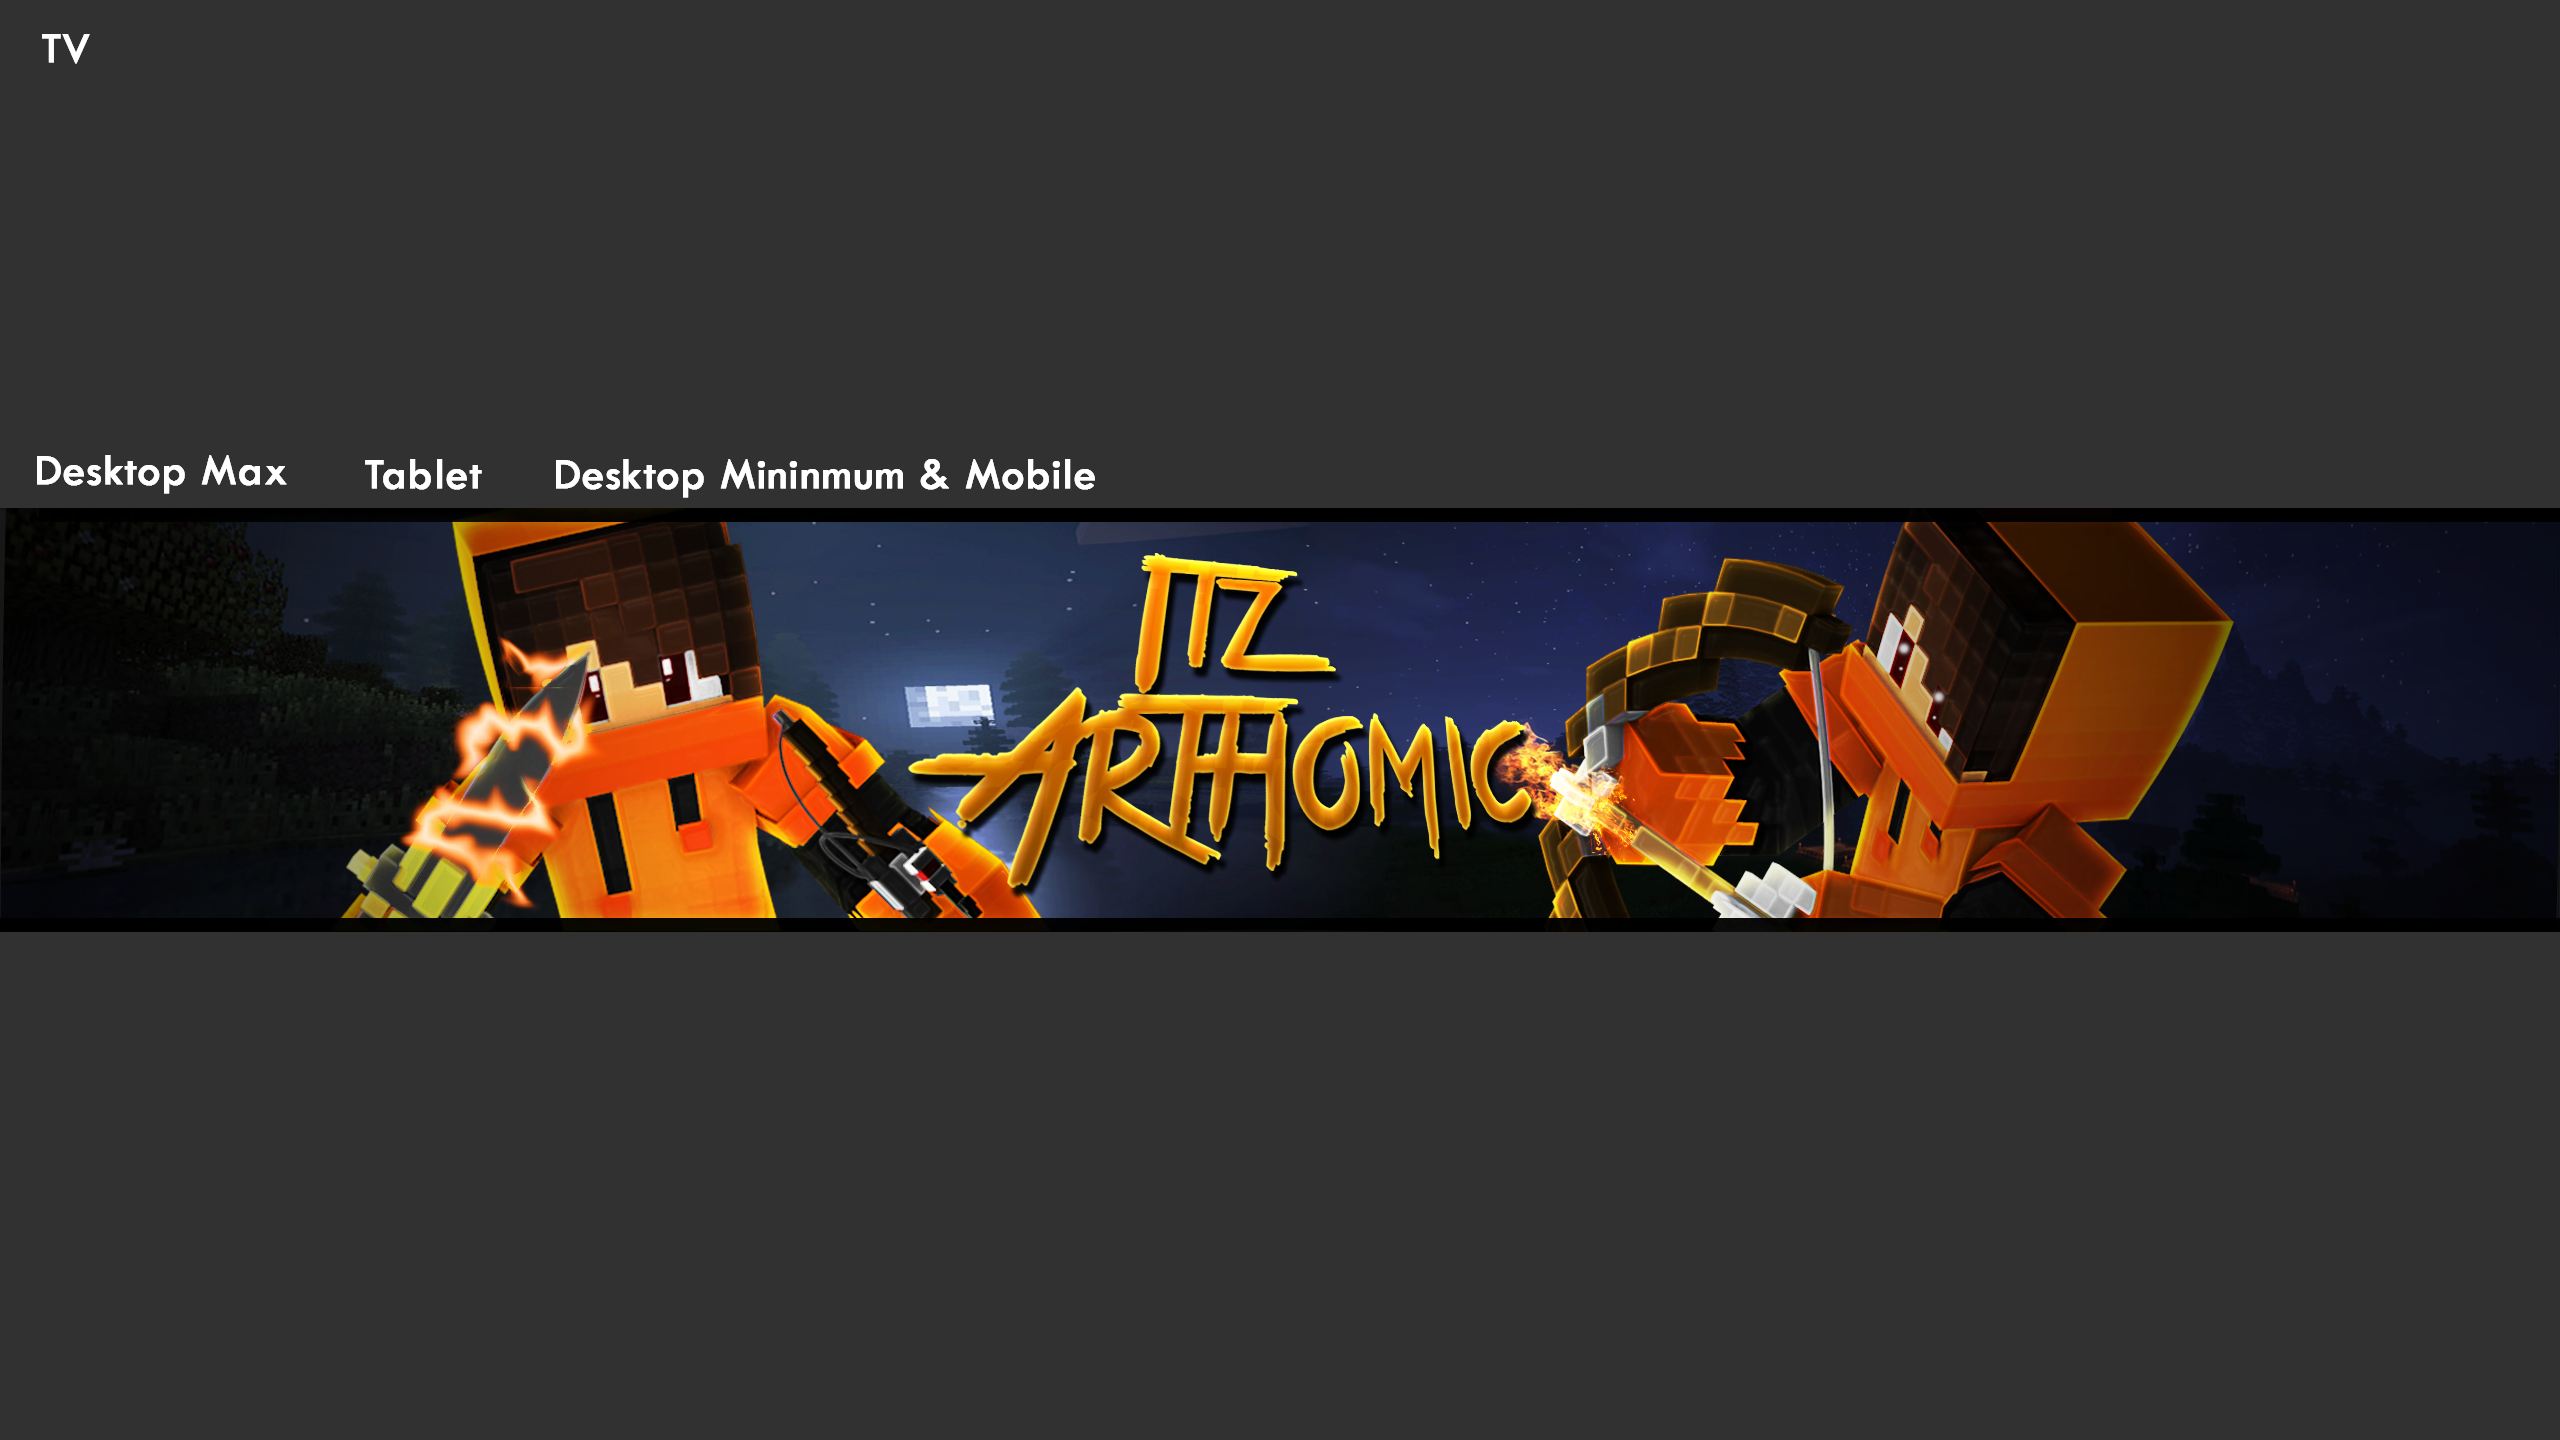 Making free Quality banners on youtube. Channel is ItzArthomic